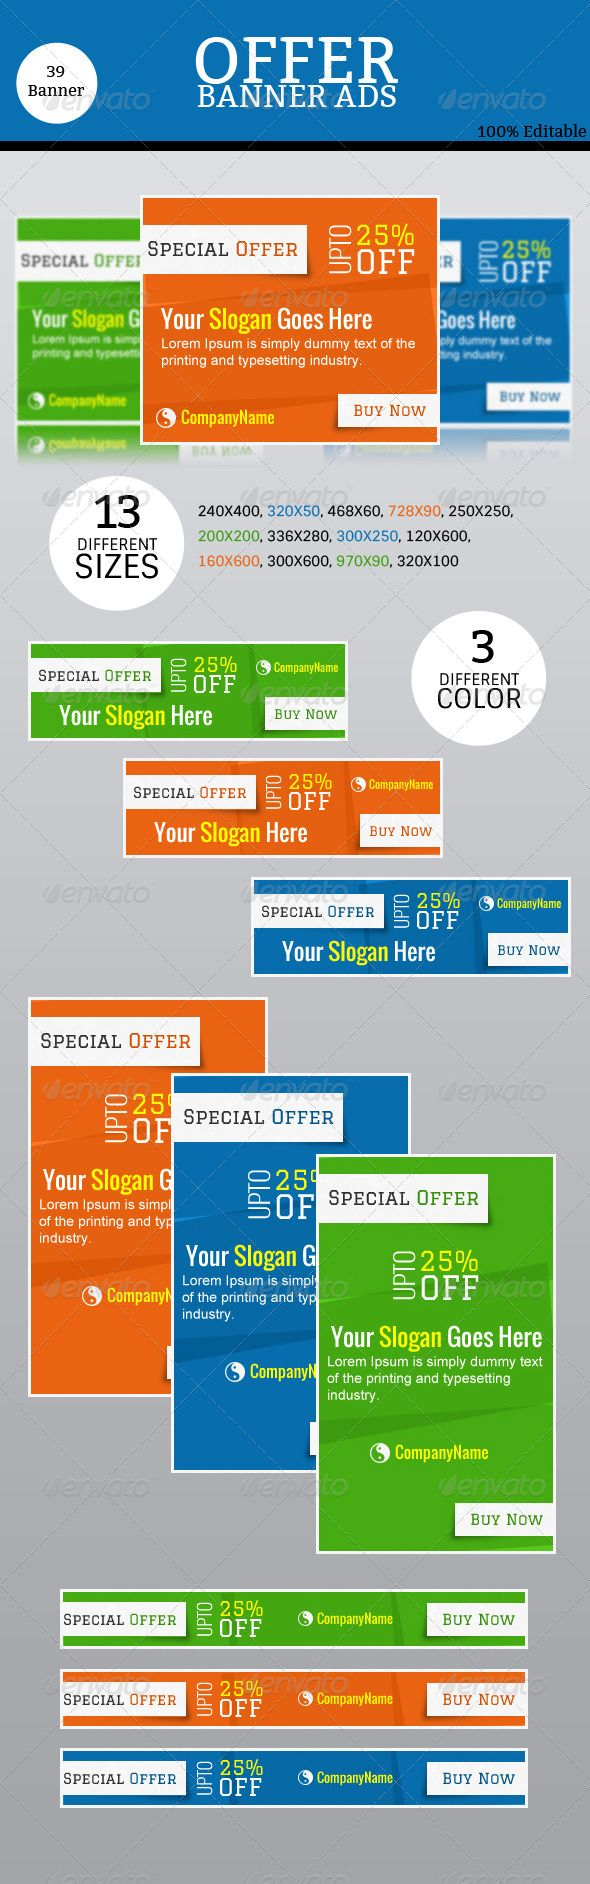 Offer Banner Ads Template PSD | Buy and Download: http://graphicriver.net/item/offer-banner-ads/8597111?WT.ac=category_thumb&WT.z_author=parthamallick&ref=ksioks